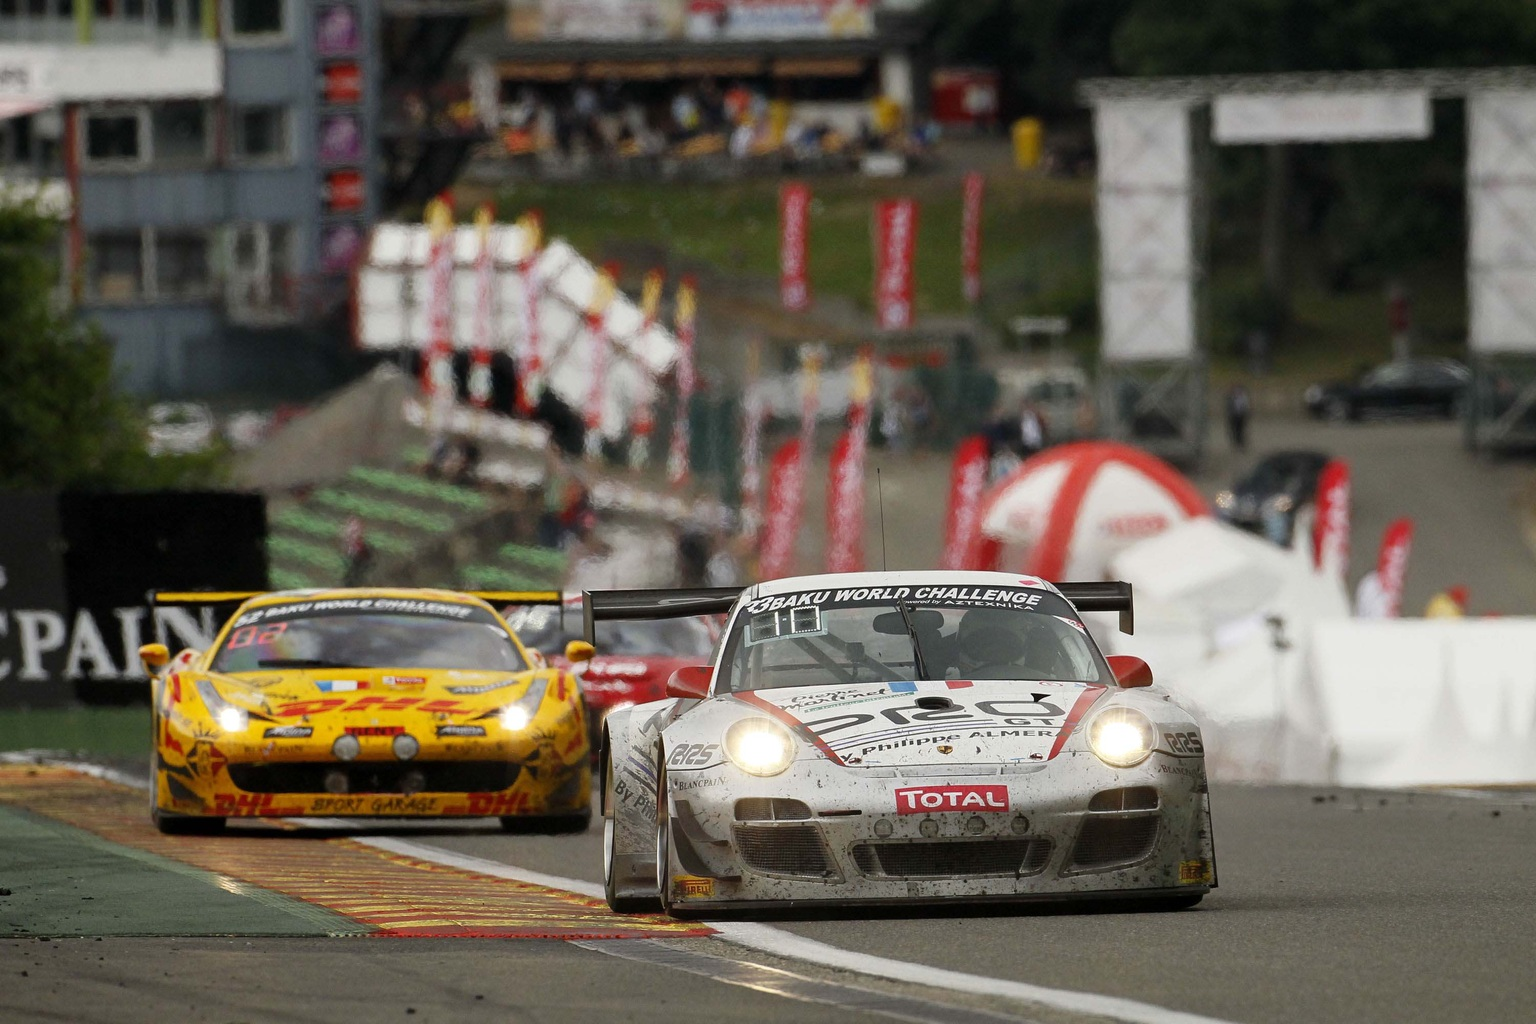 2013 Total 24 Hours of SPA